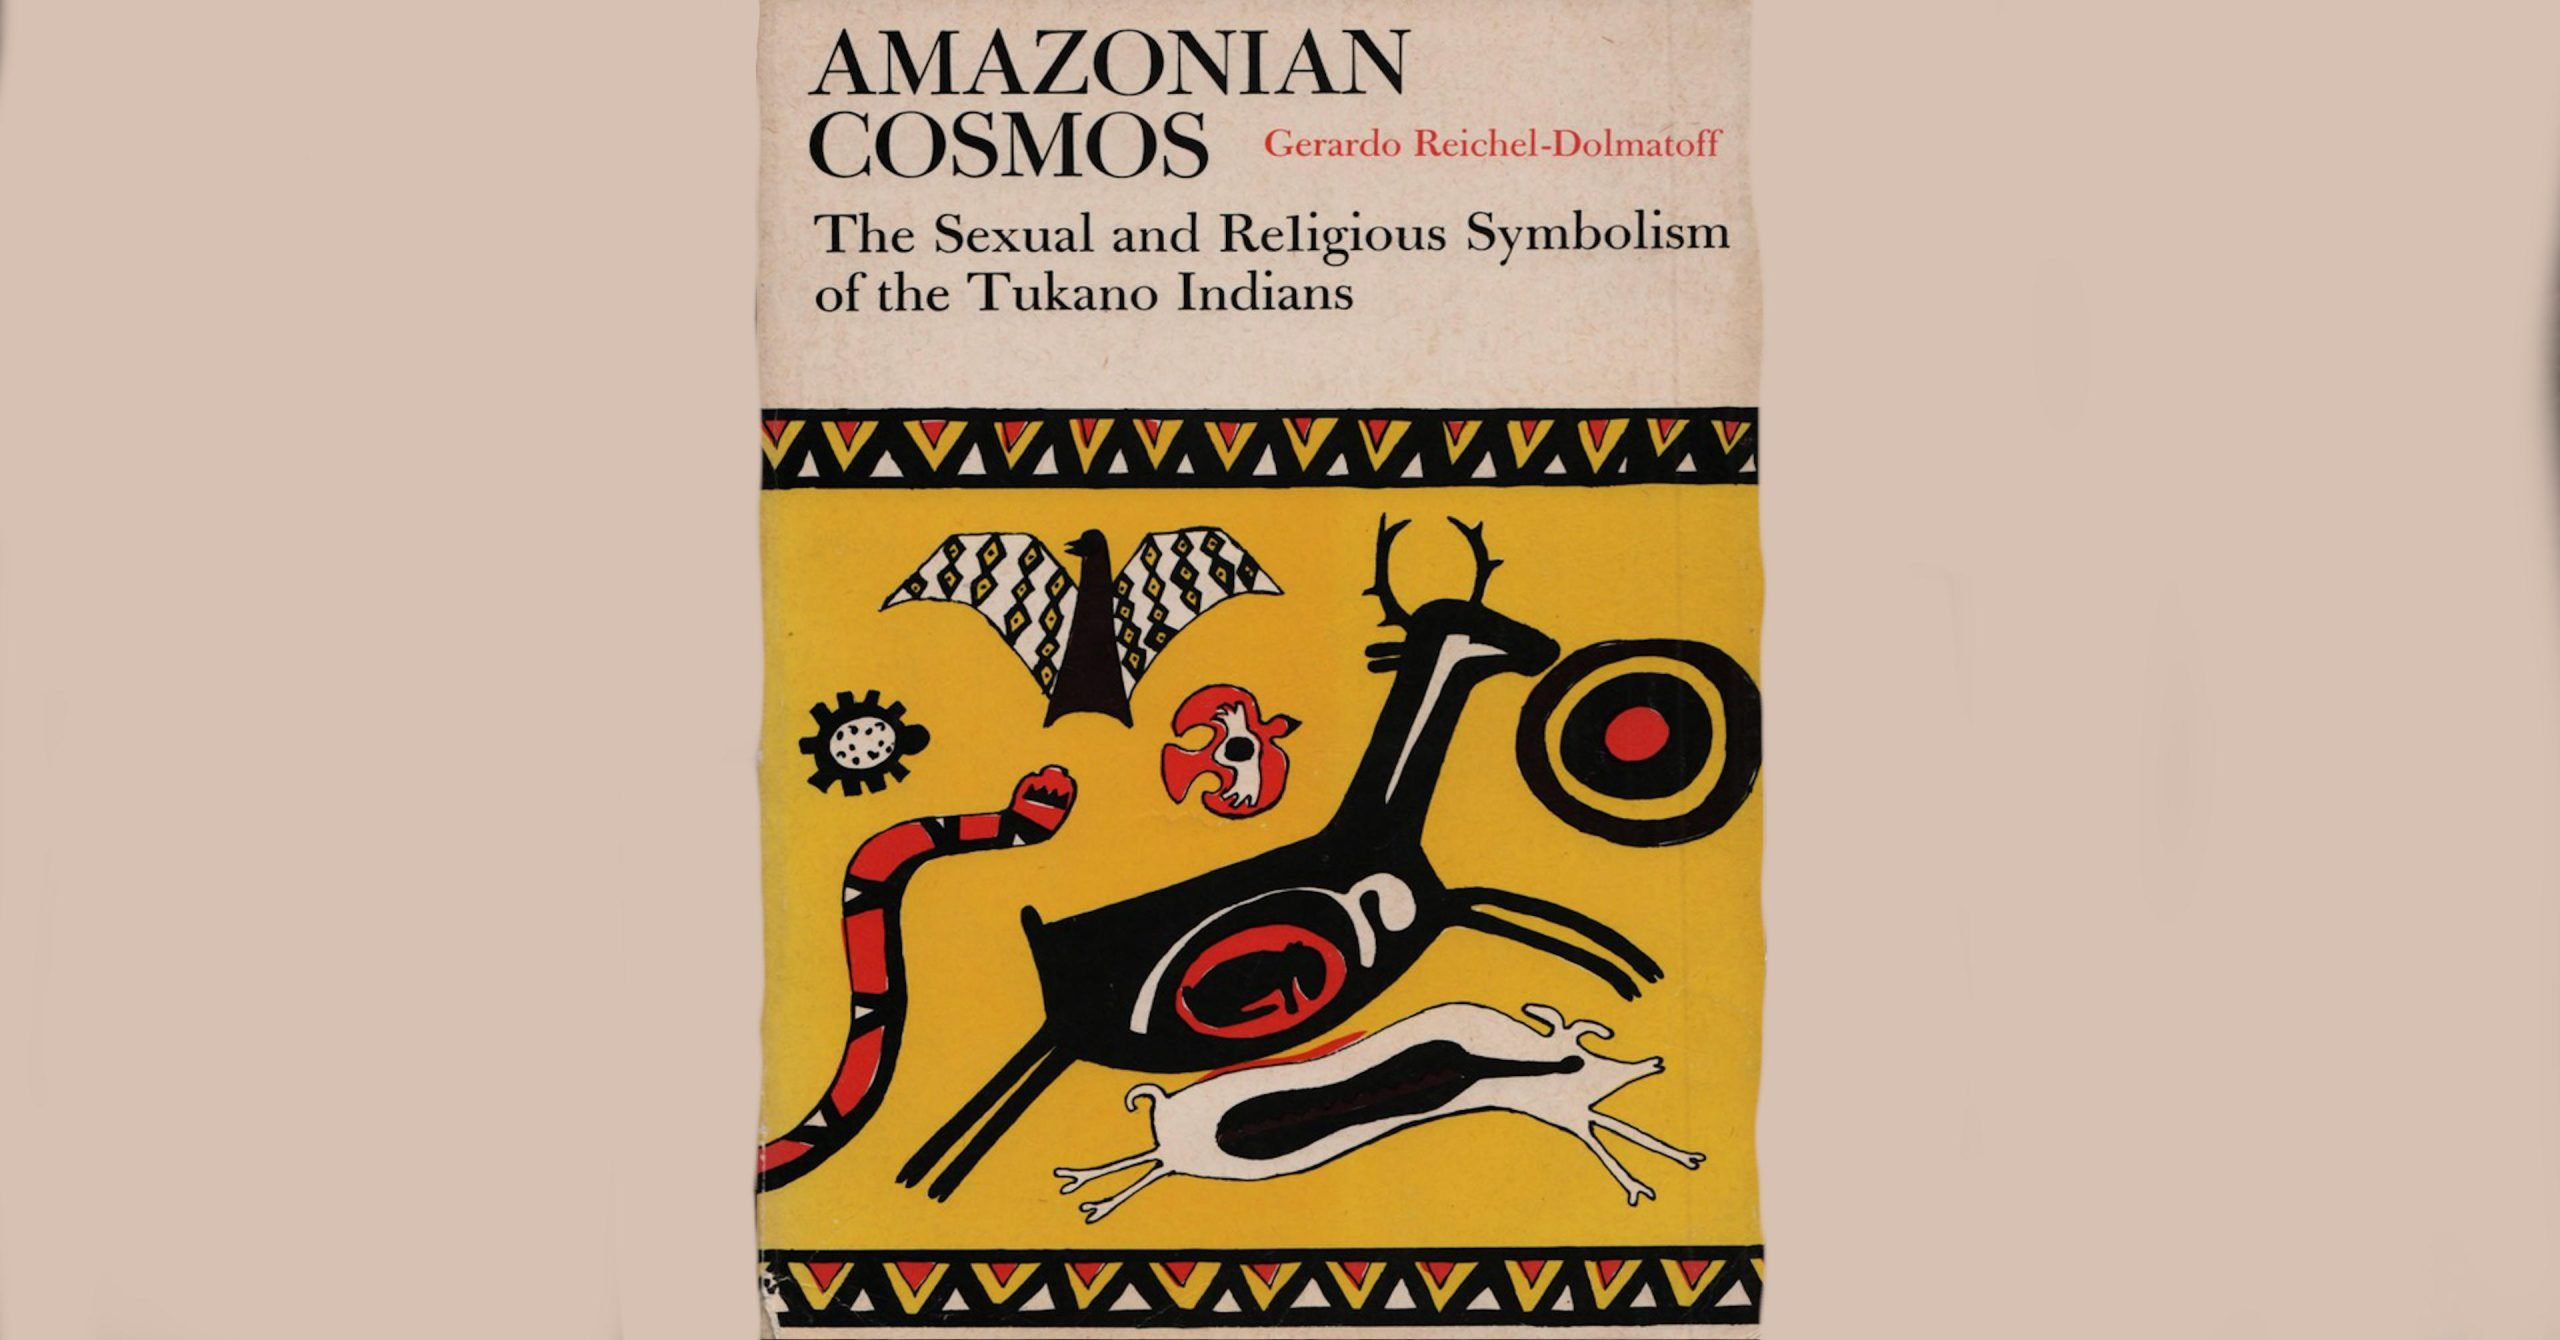 1971 – Anthropologist Gerardo Reichel-Dolmatoff Publishes Amazonian Cosmos, a Study of the Tukano Indians of Colombia